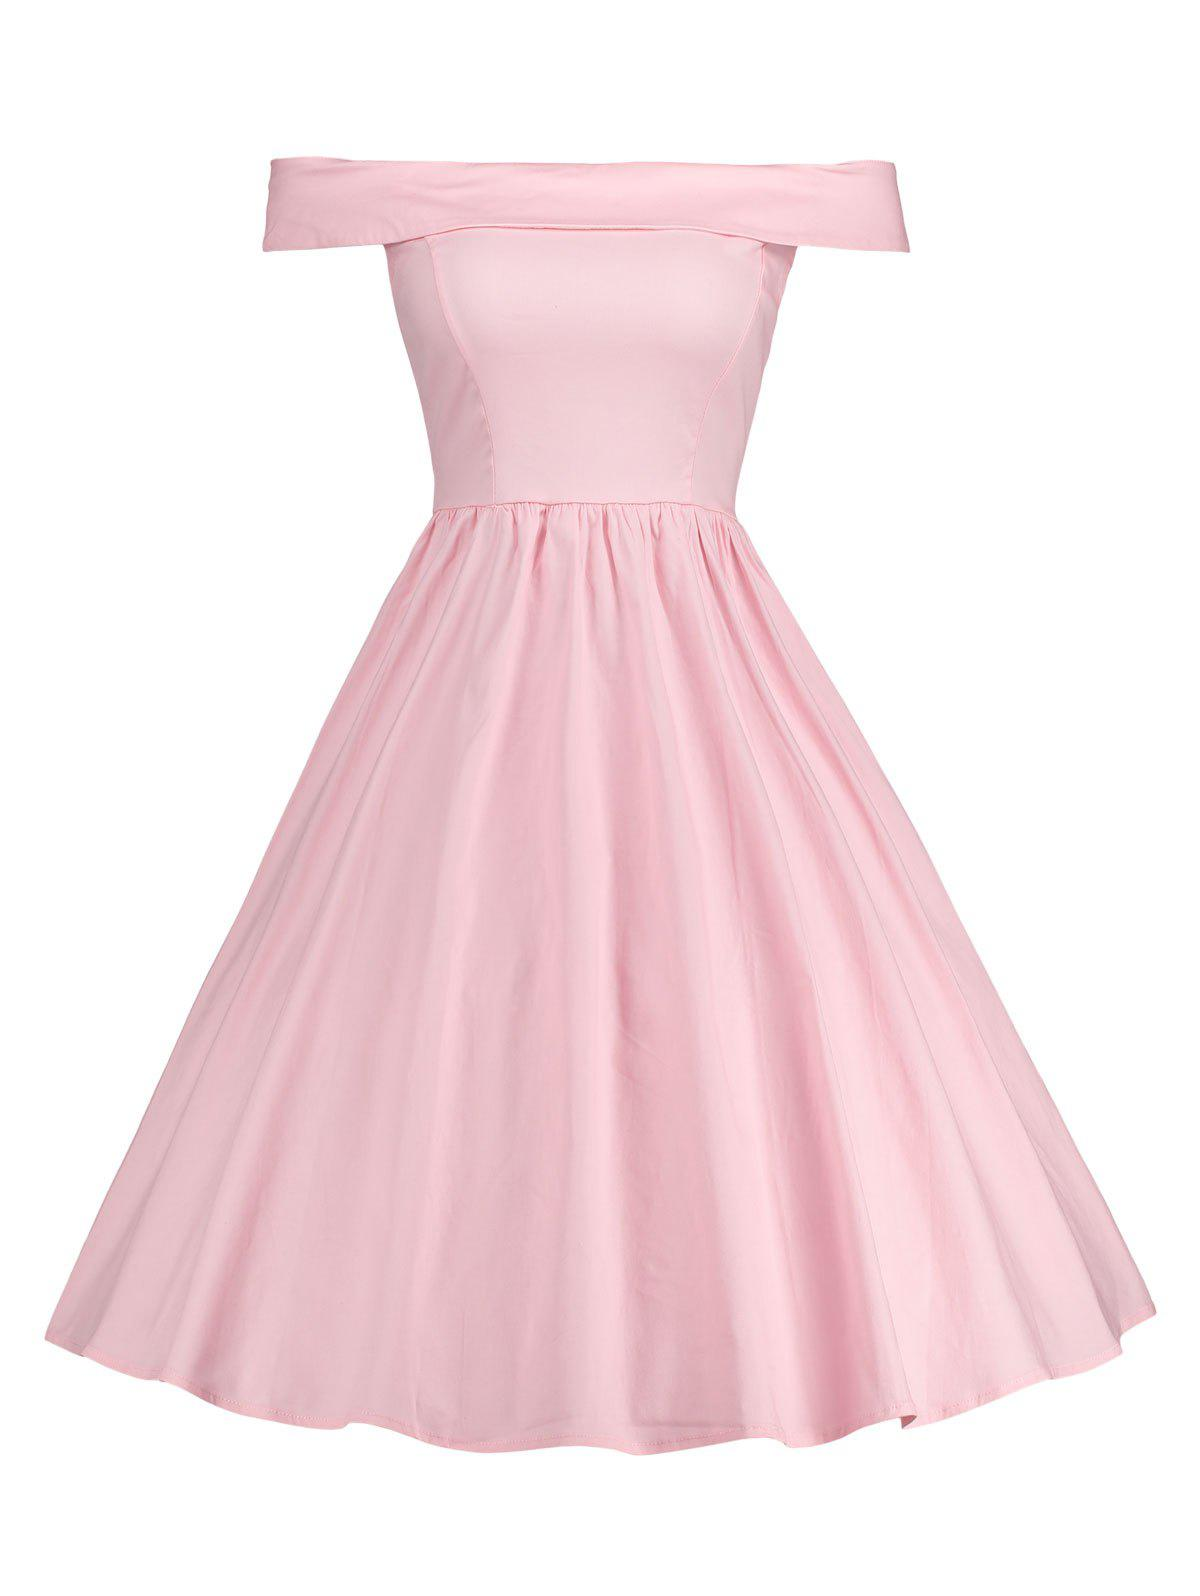 Off Shoulder A Line Vintage DressWOMEN<br><br>Size: S; Color: PINK; Style: Vintage; Material: Polyester,Spandex; Silhouette: A-Line; Dresses Length: Knee-Length; Neckline: Off The Shoulder; Sleeve Length: Short Sleeves; Pattern Type: Solid; With Belt: No; Season: Fall,Spring; Weight: 0.4200kg; Package Contents: 1 x Dress;